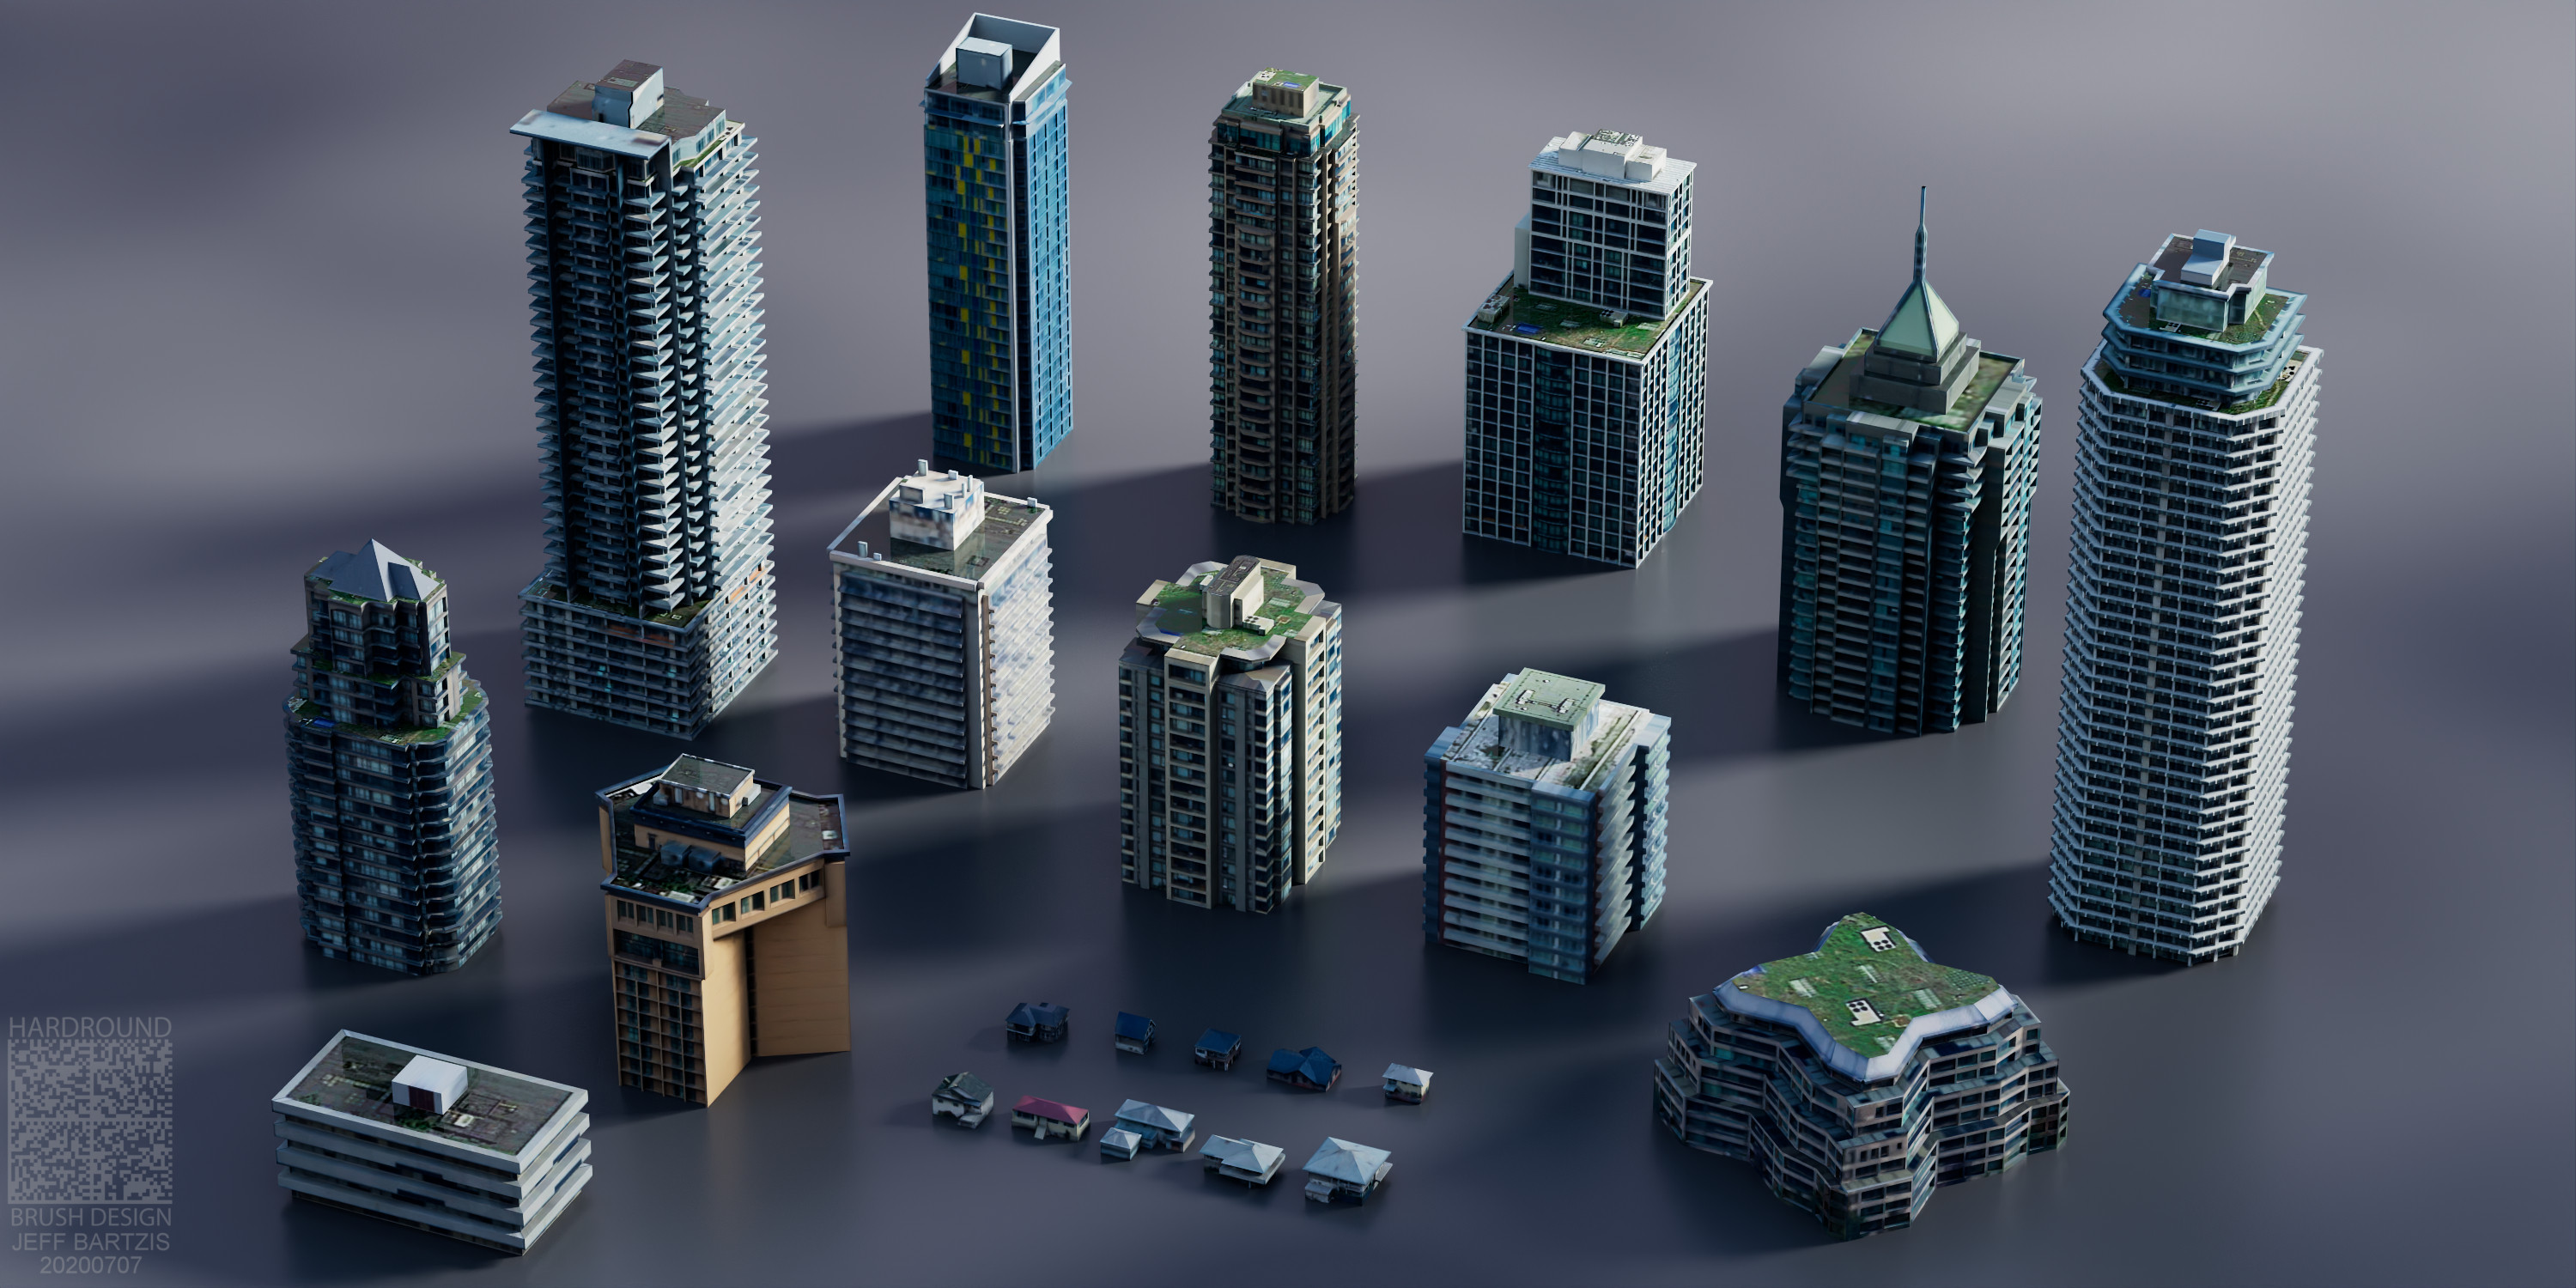 Low Poly building assets - modeled from textures